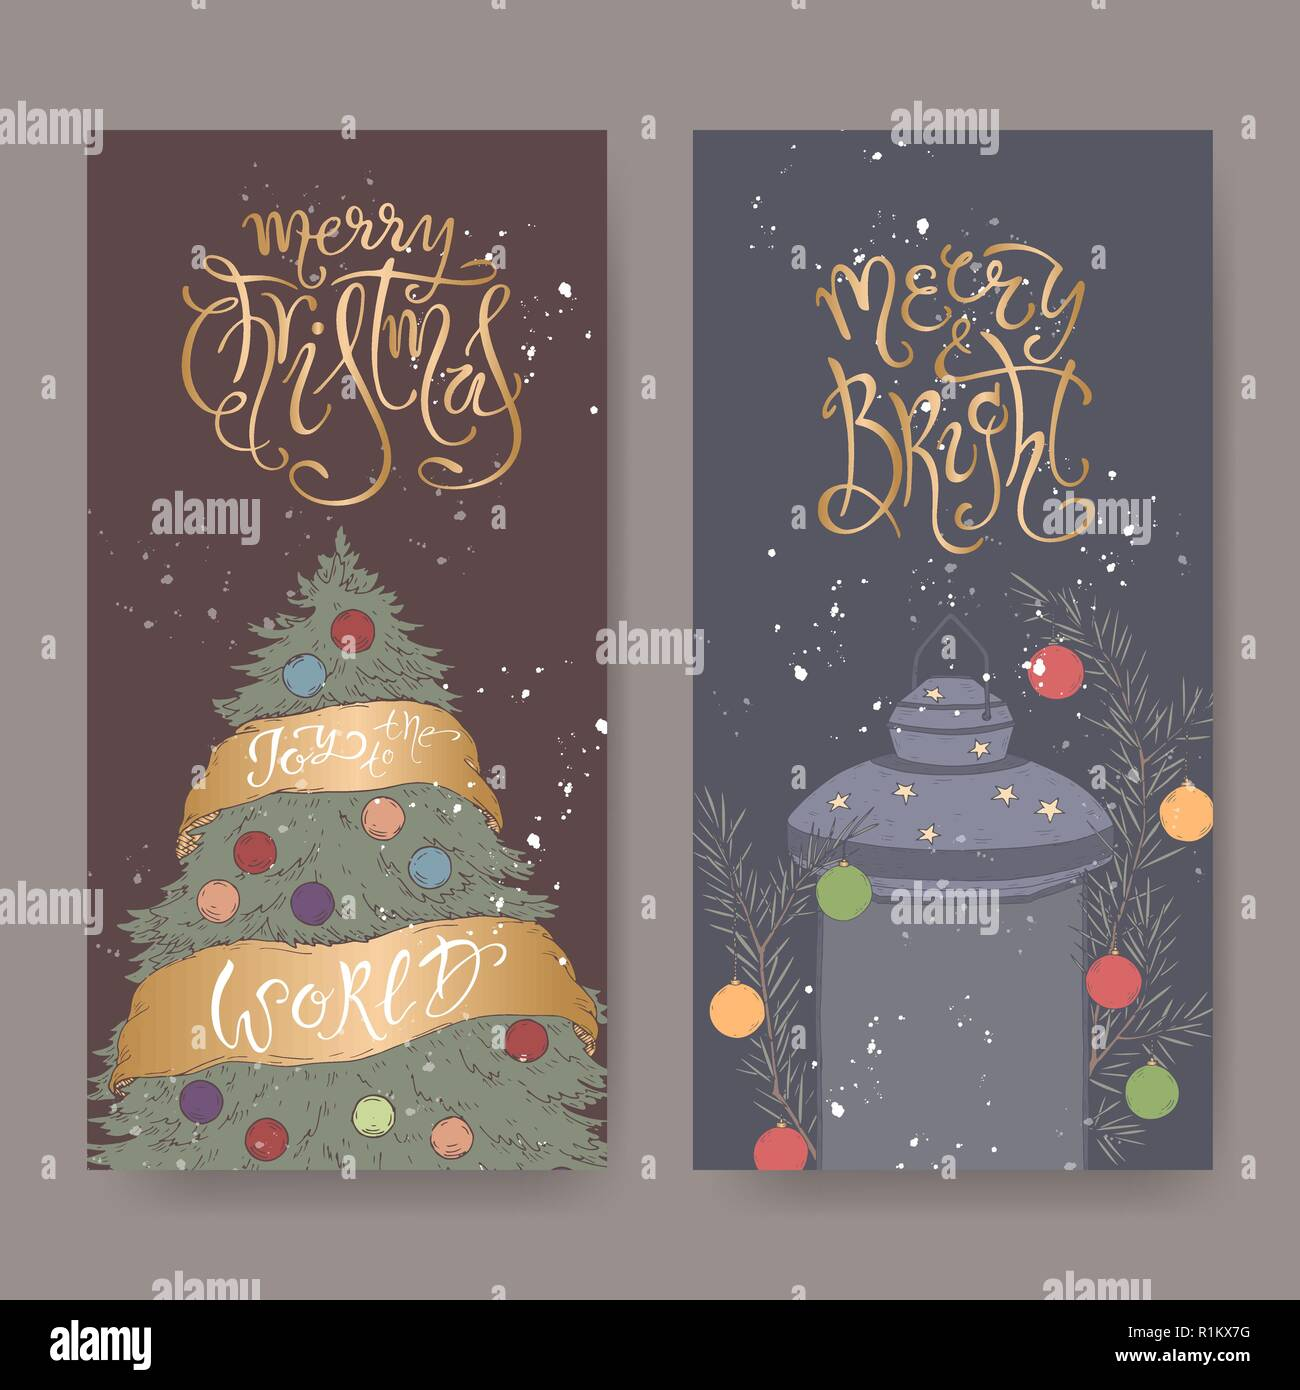 Set Of Two Color Banners With Christmas Brush Lettering Christmas Tree And Decorated Holiday Lantern Stock Vector Image Art Alamy